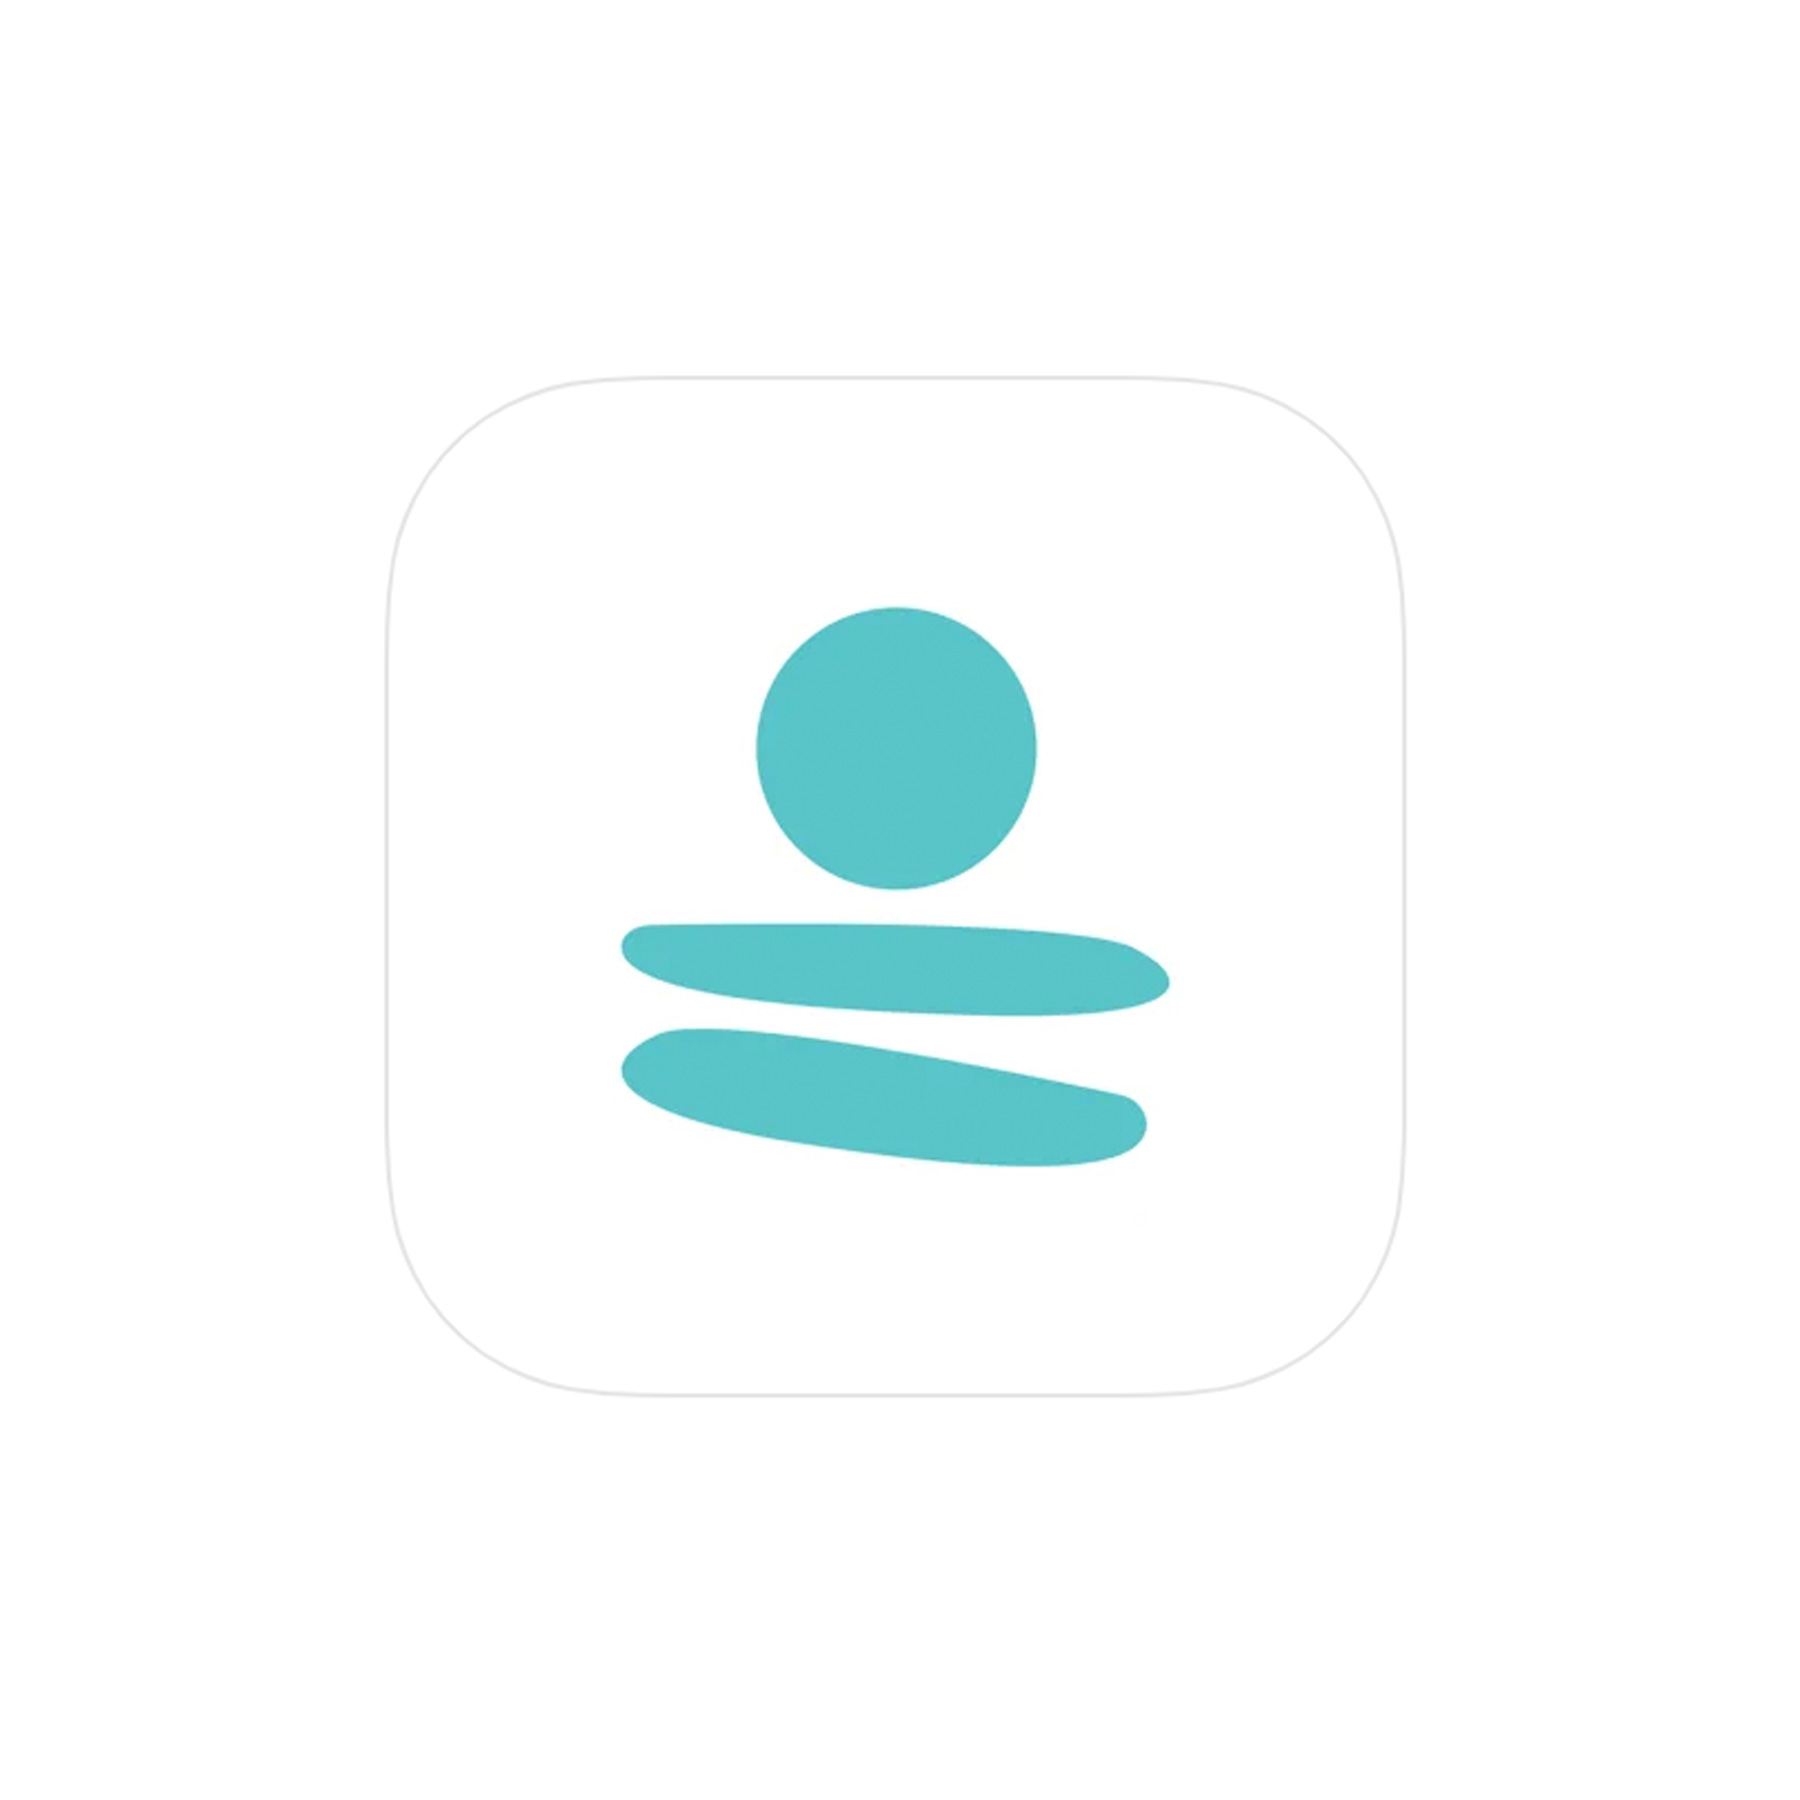 Mediation Apps 2020: Simple Habit meditation app